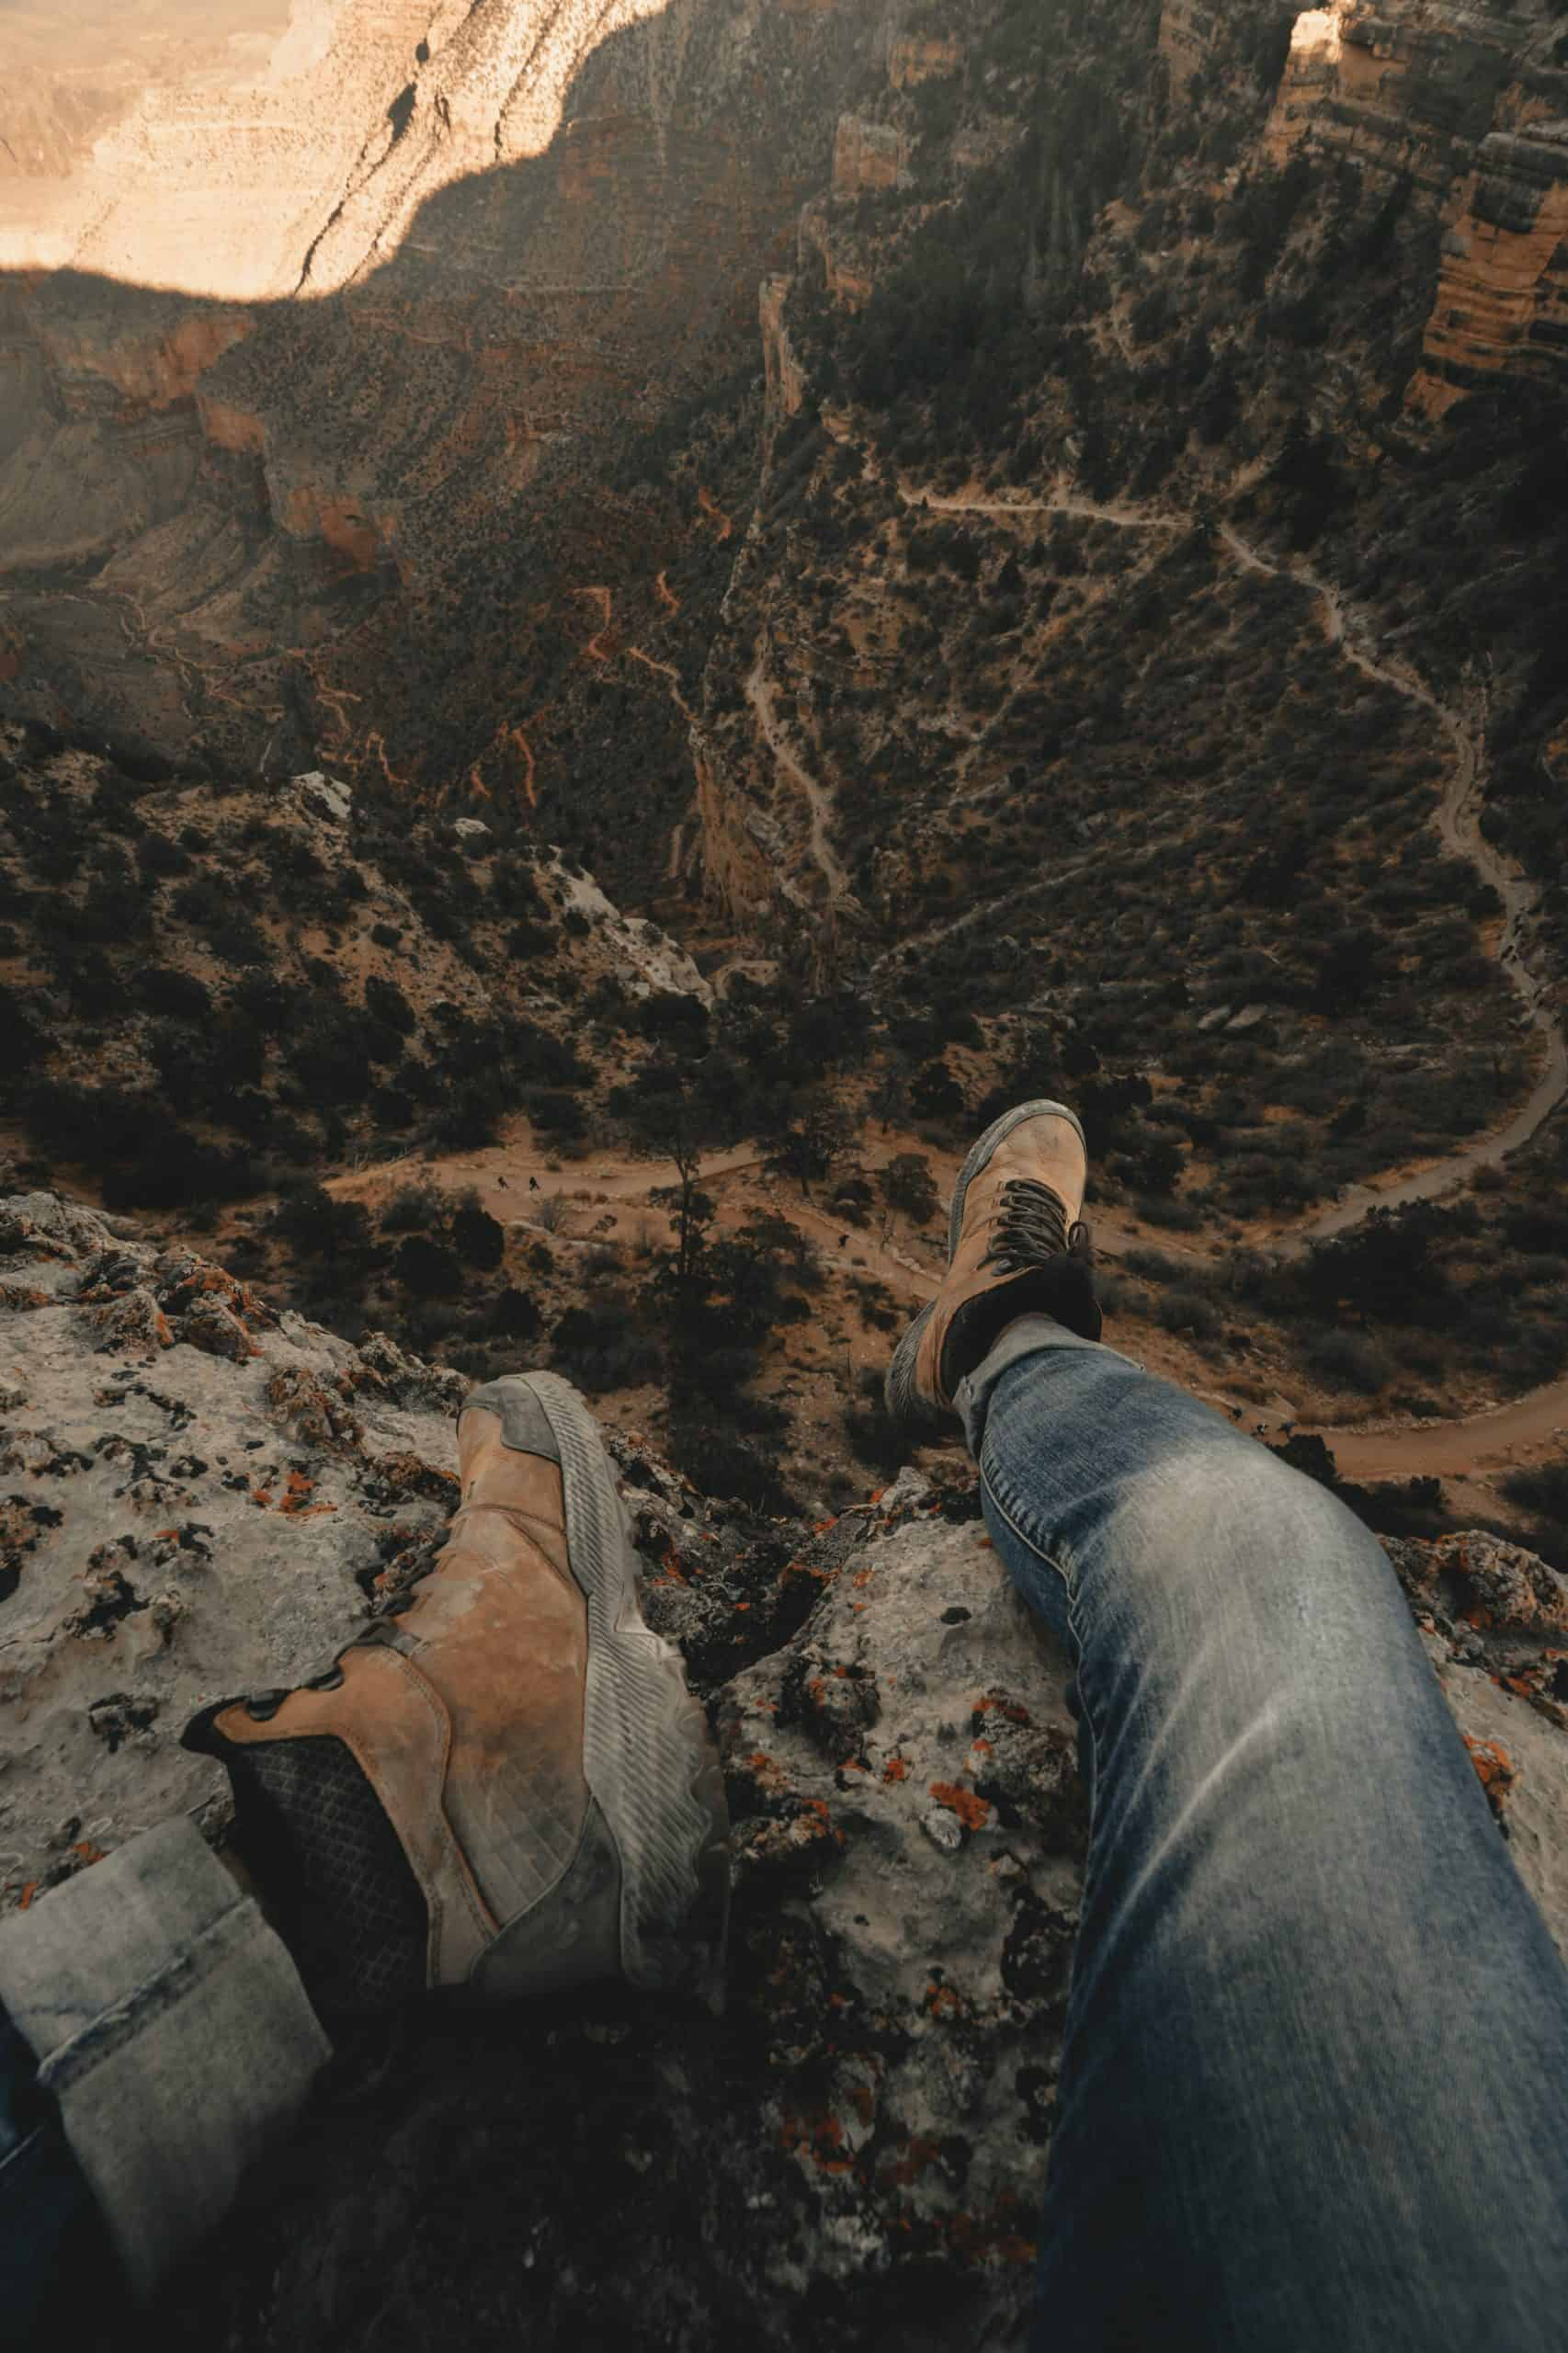 Clay Banks image Unsplash hanging over the canyon edge with merrell boots on